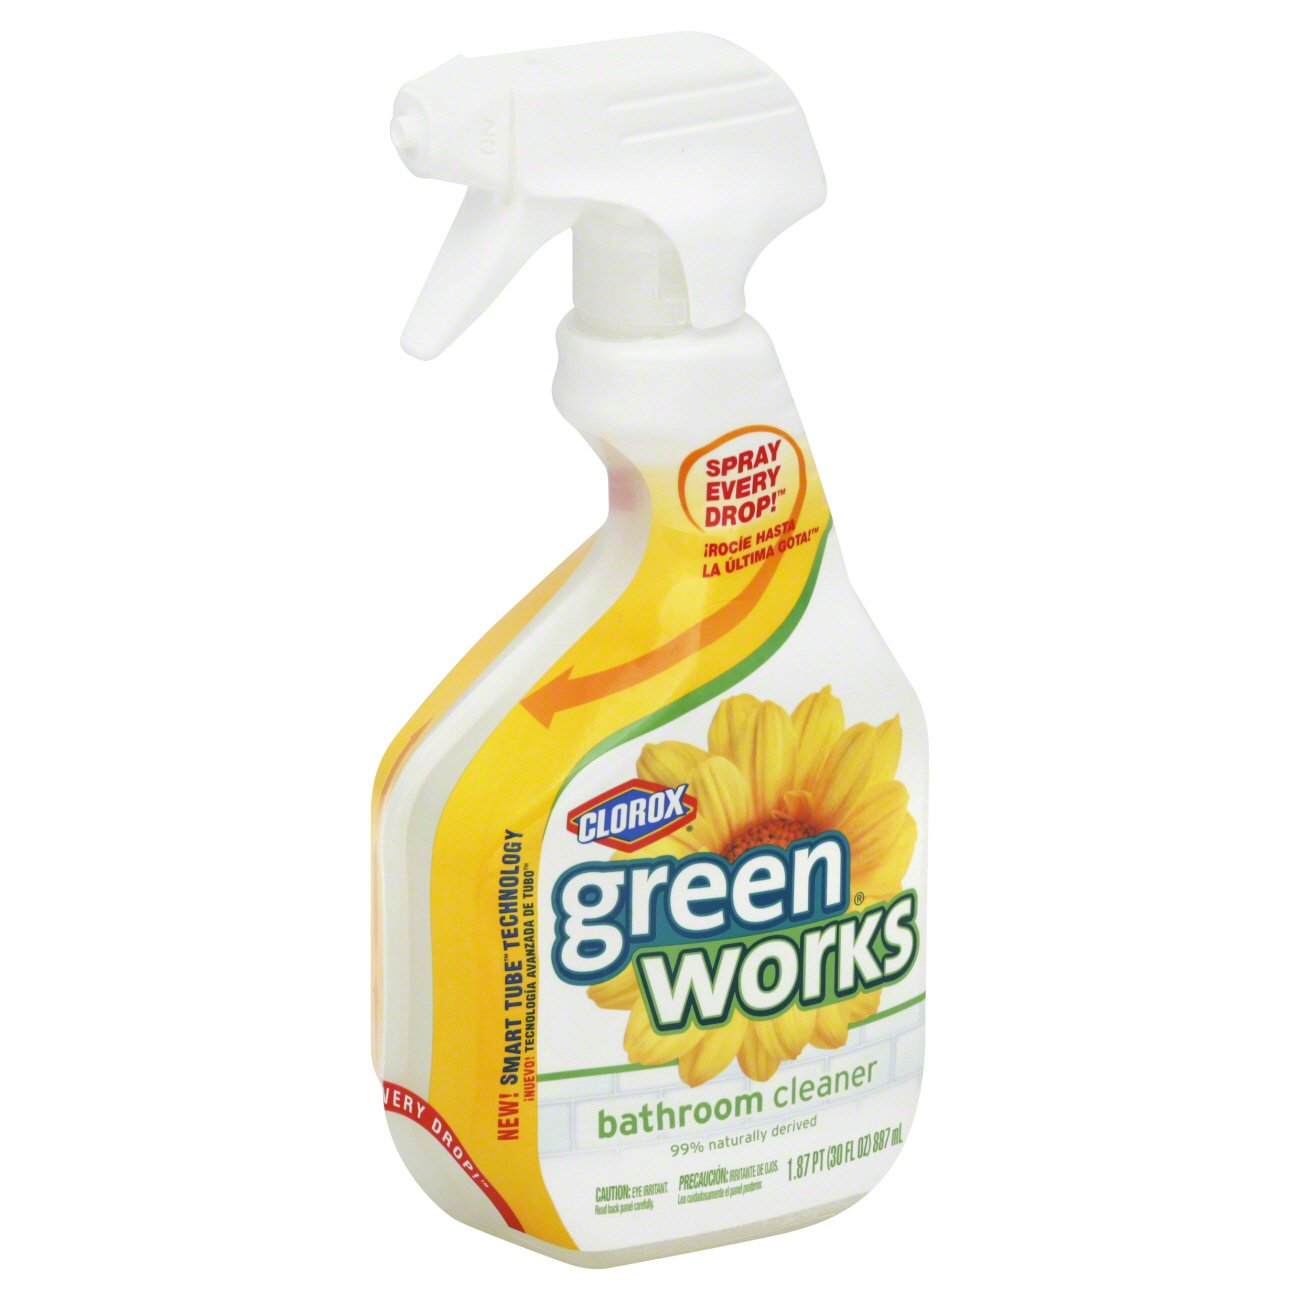 Clorox Green Works General Bathroom Cleaner Spray   Shop Bathroom And  Drains At HEB